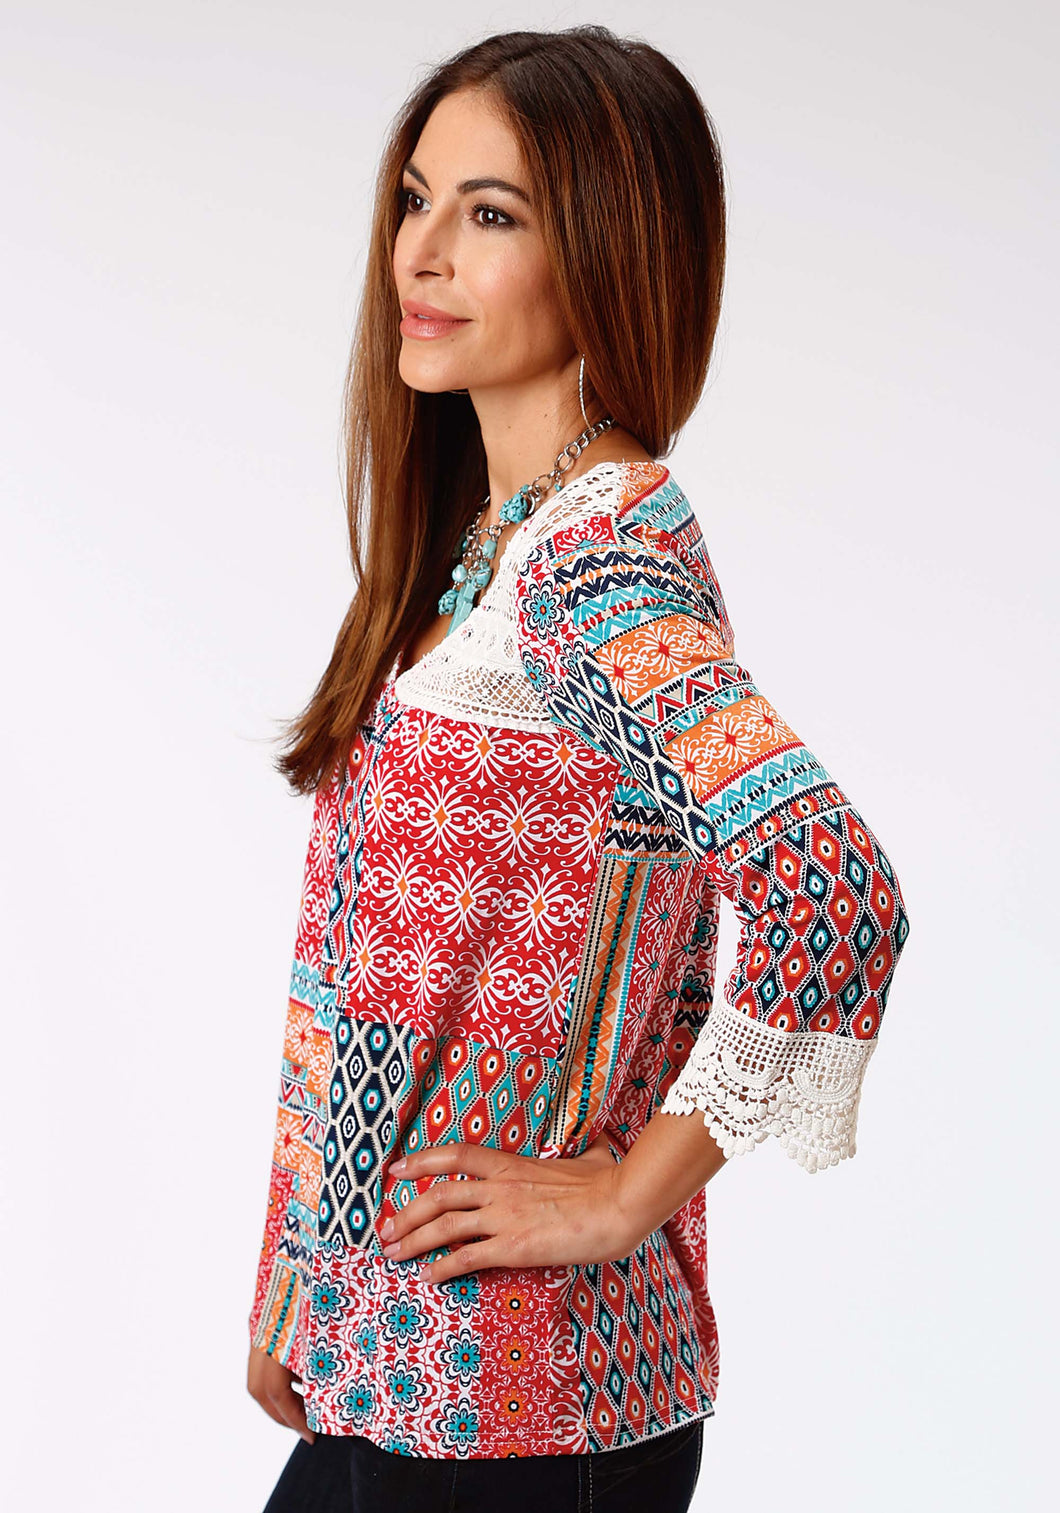 Studio West- Gypsy Paradise Swest Womens Long Sleeve Shirt 0978 Floral Aztec Patch Print Top